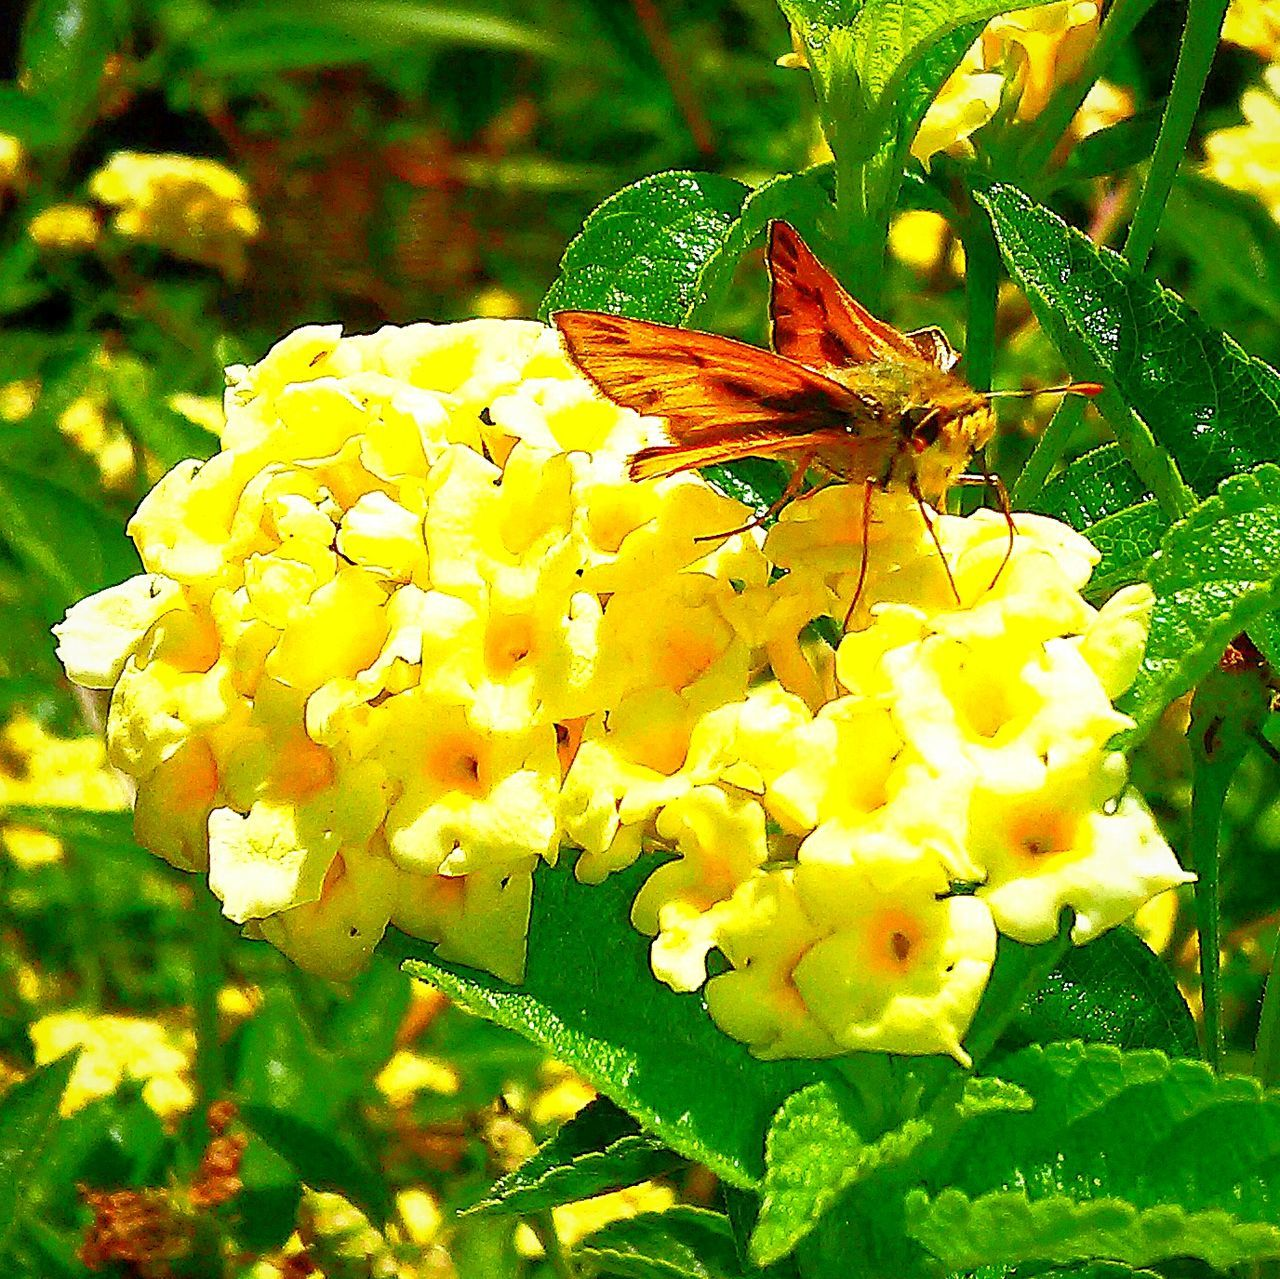 flower, animal themes, one animal, animals in the wild, insect, growth, fragility, nature, plant, freshness, wildlife, petal, animal wildlife, beauty in nature, outdoors, day, no people, focus on foreground, close-up, flower head, yellow, green color, perching, pollination, blooming